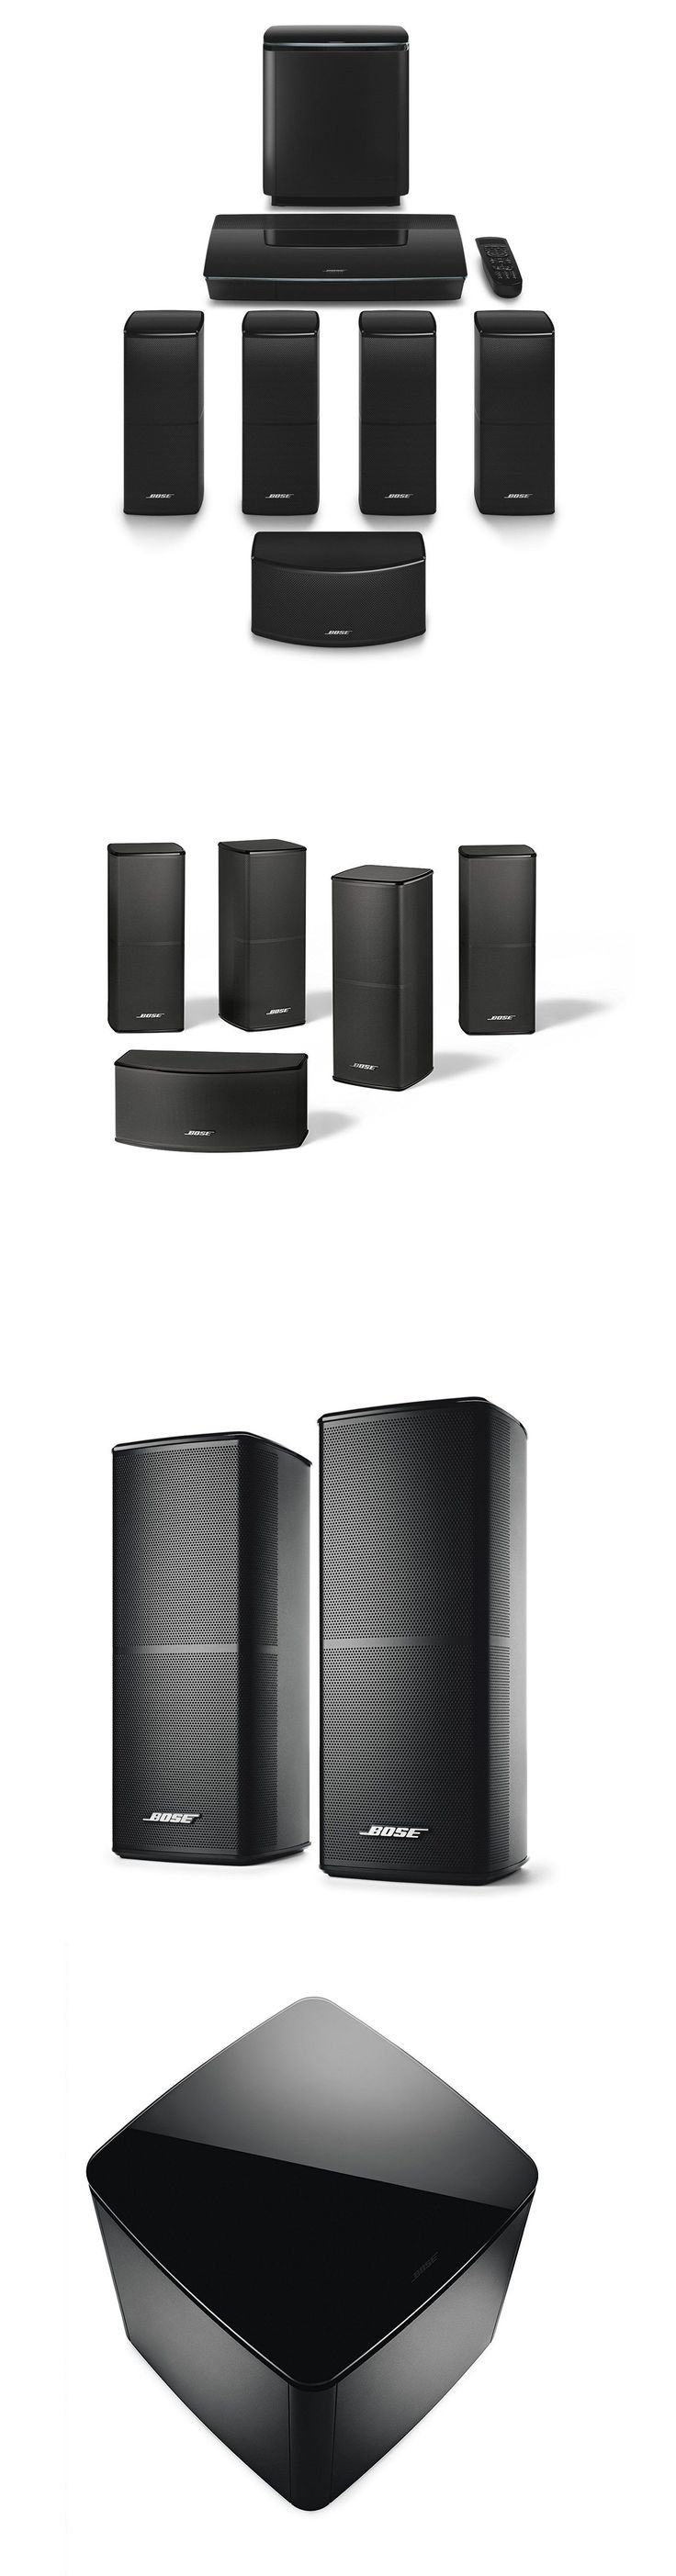 Bose soundtouch 130 home theater system black 738484 1100 b amp h - Home Theater Systems Bose Lifestyle 600 Home Entertainment System Black Buy It Now